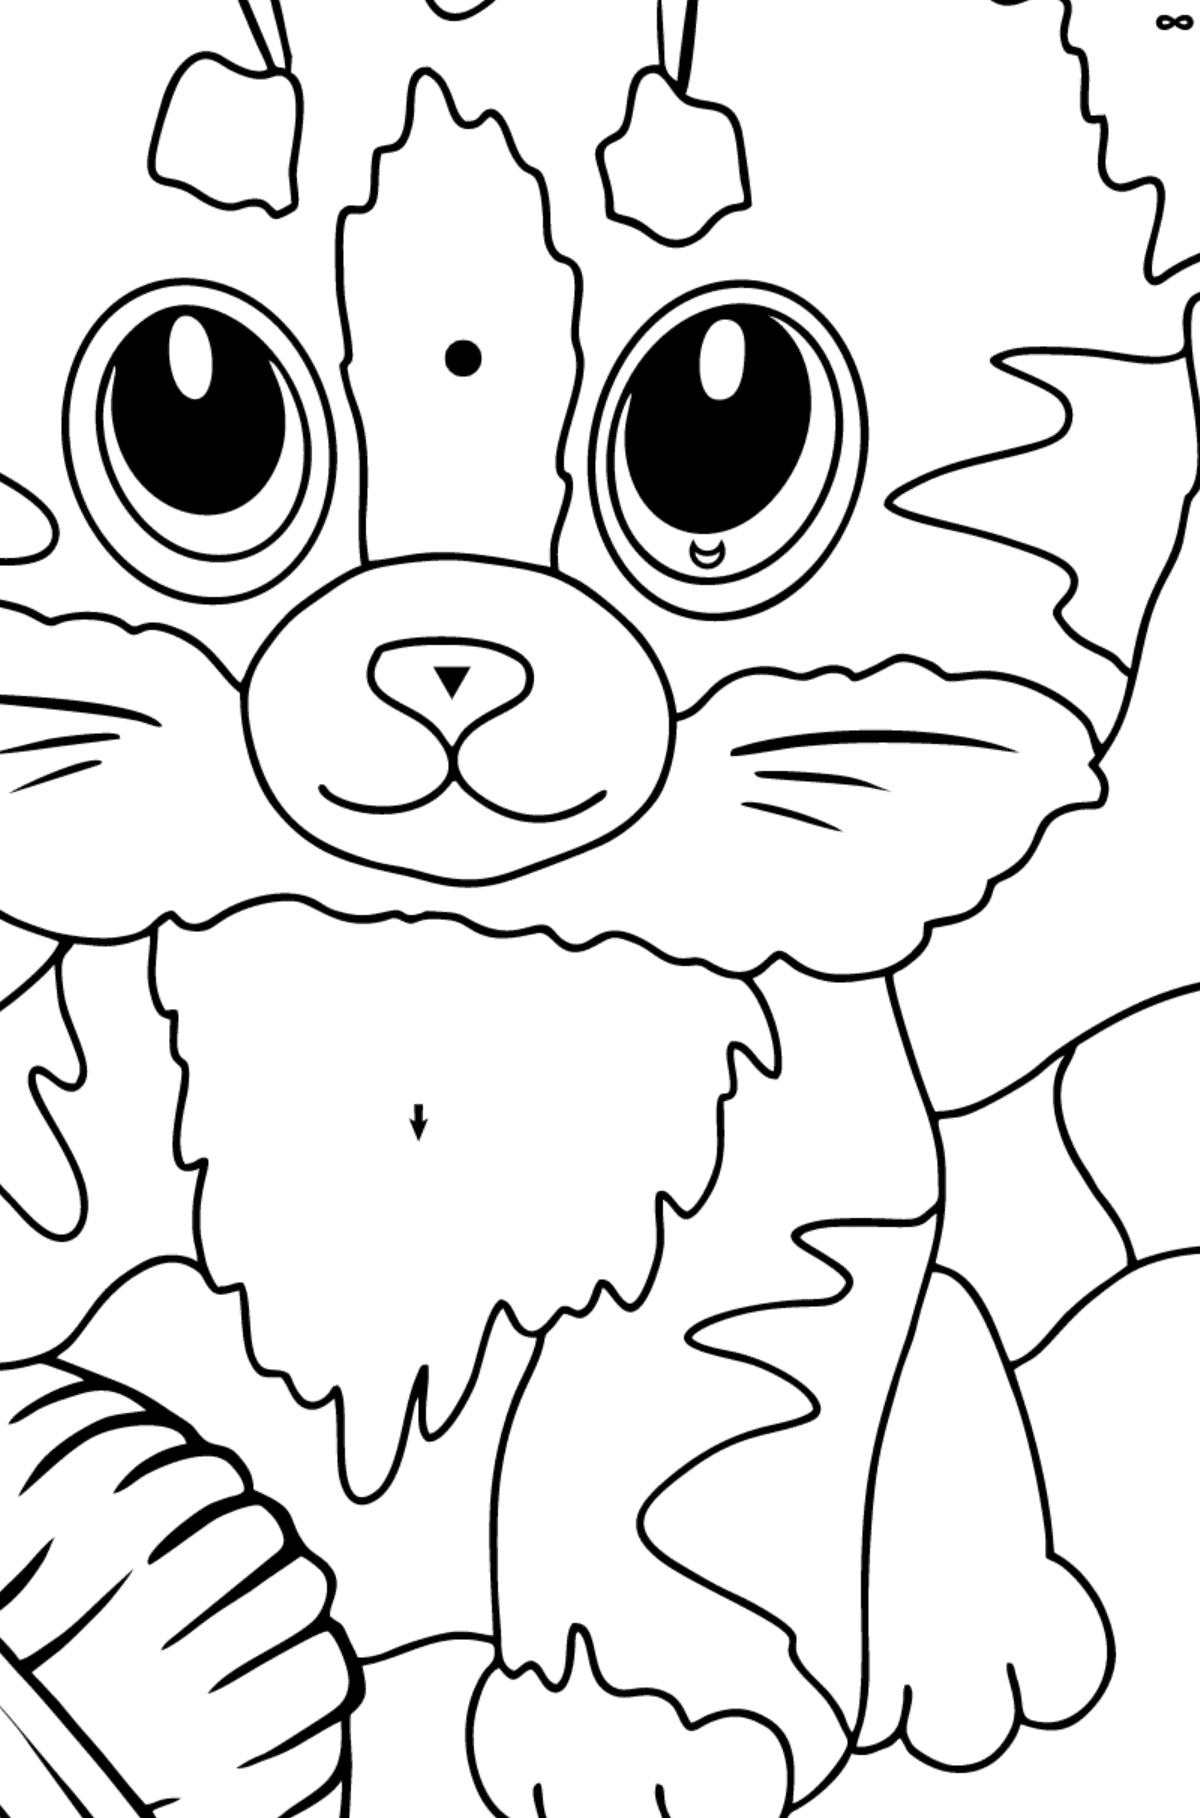 Coloring Page - a Kitten has Caught a Ball of Yarn - Coloring by Symbols for Children